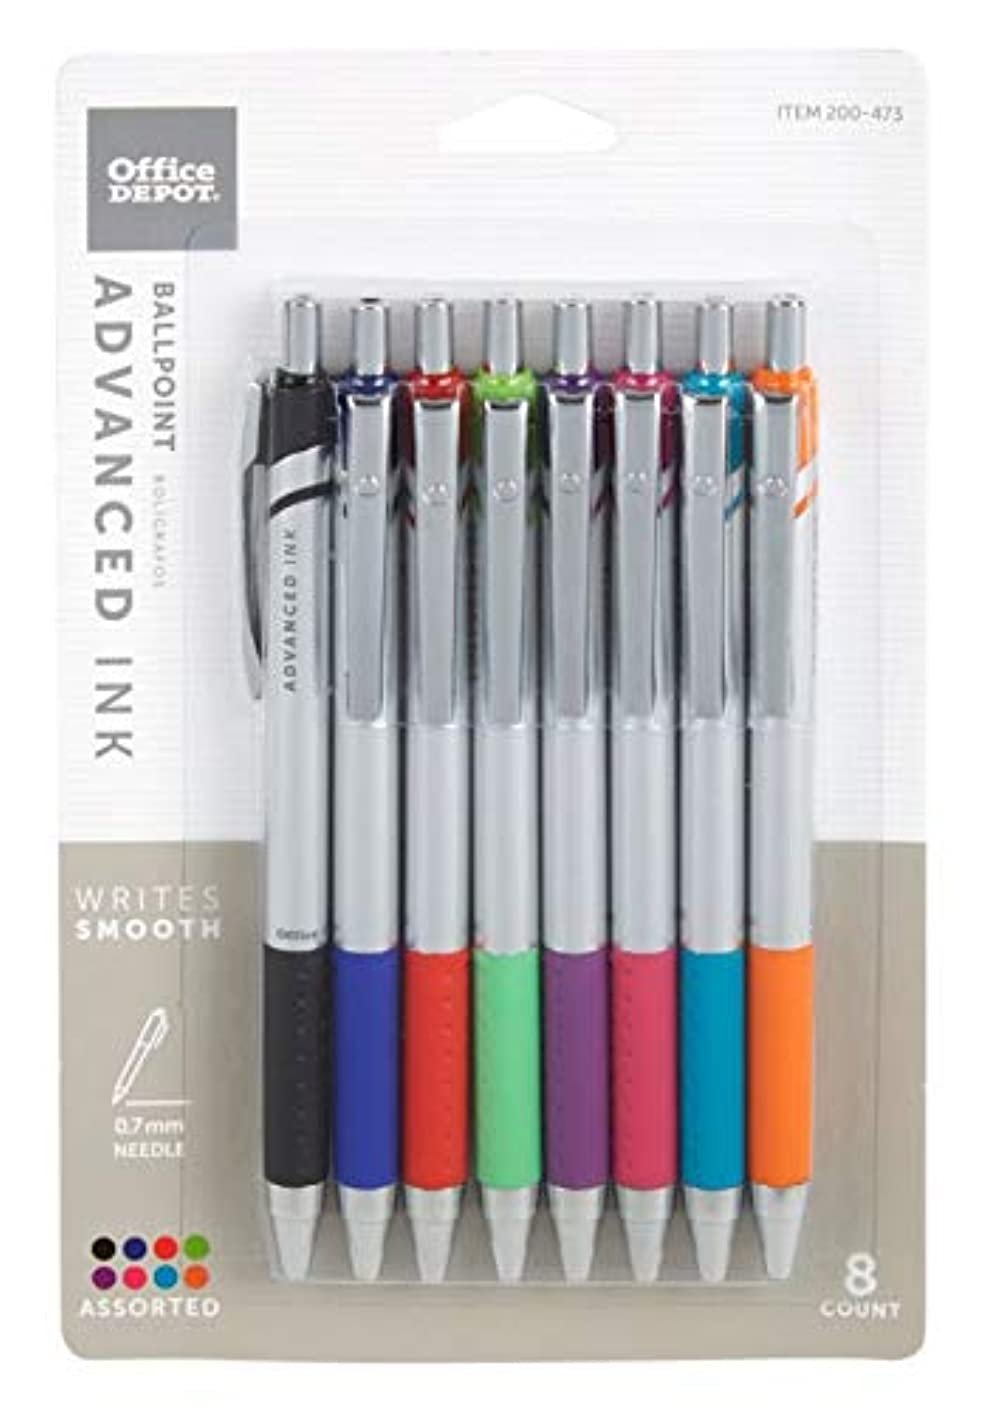 FORAY Advanced Ink Retractable Ballpoint Pens, Needle Point, 0.7 mm, Assorted Barrels, Assorted Ink Colors, Pack Of 8